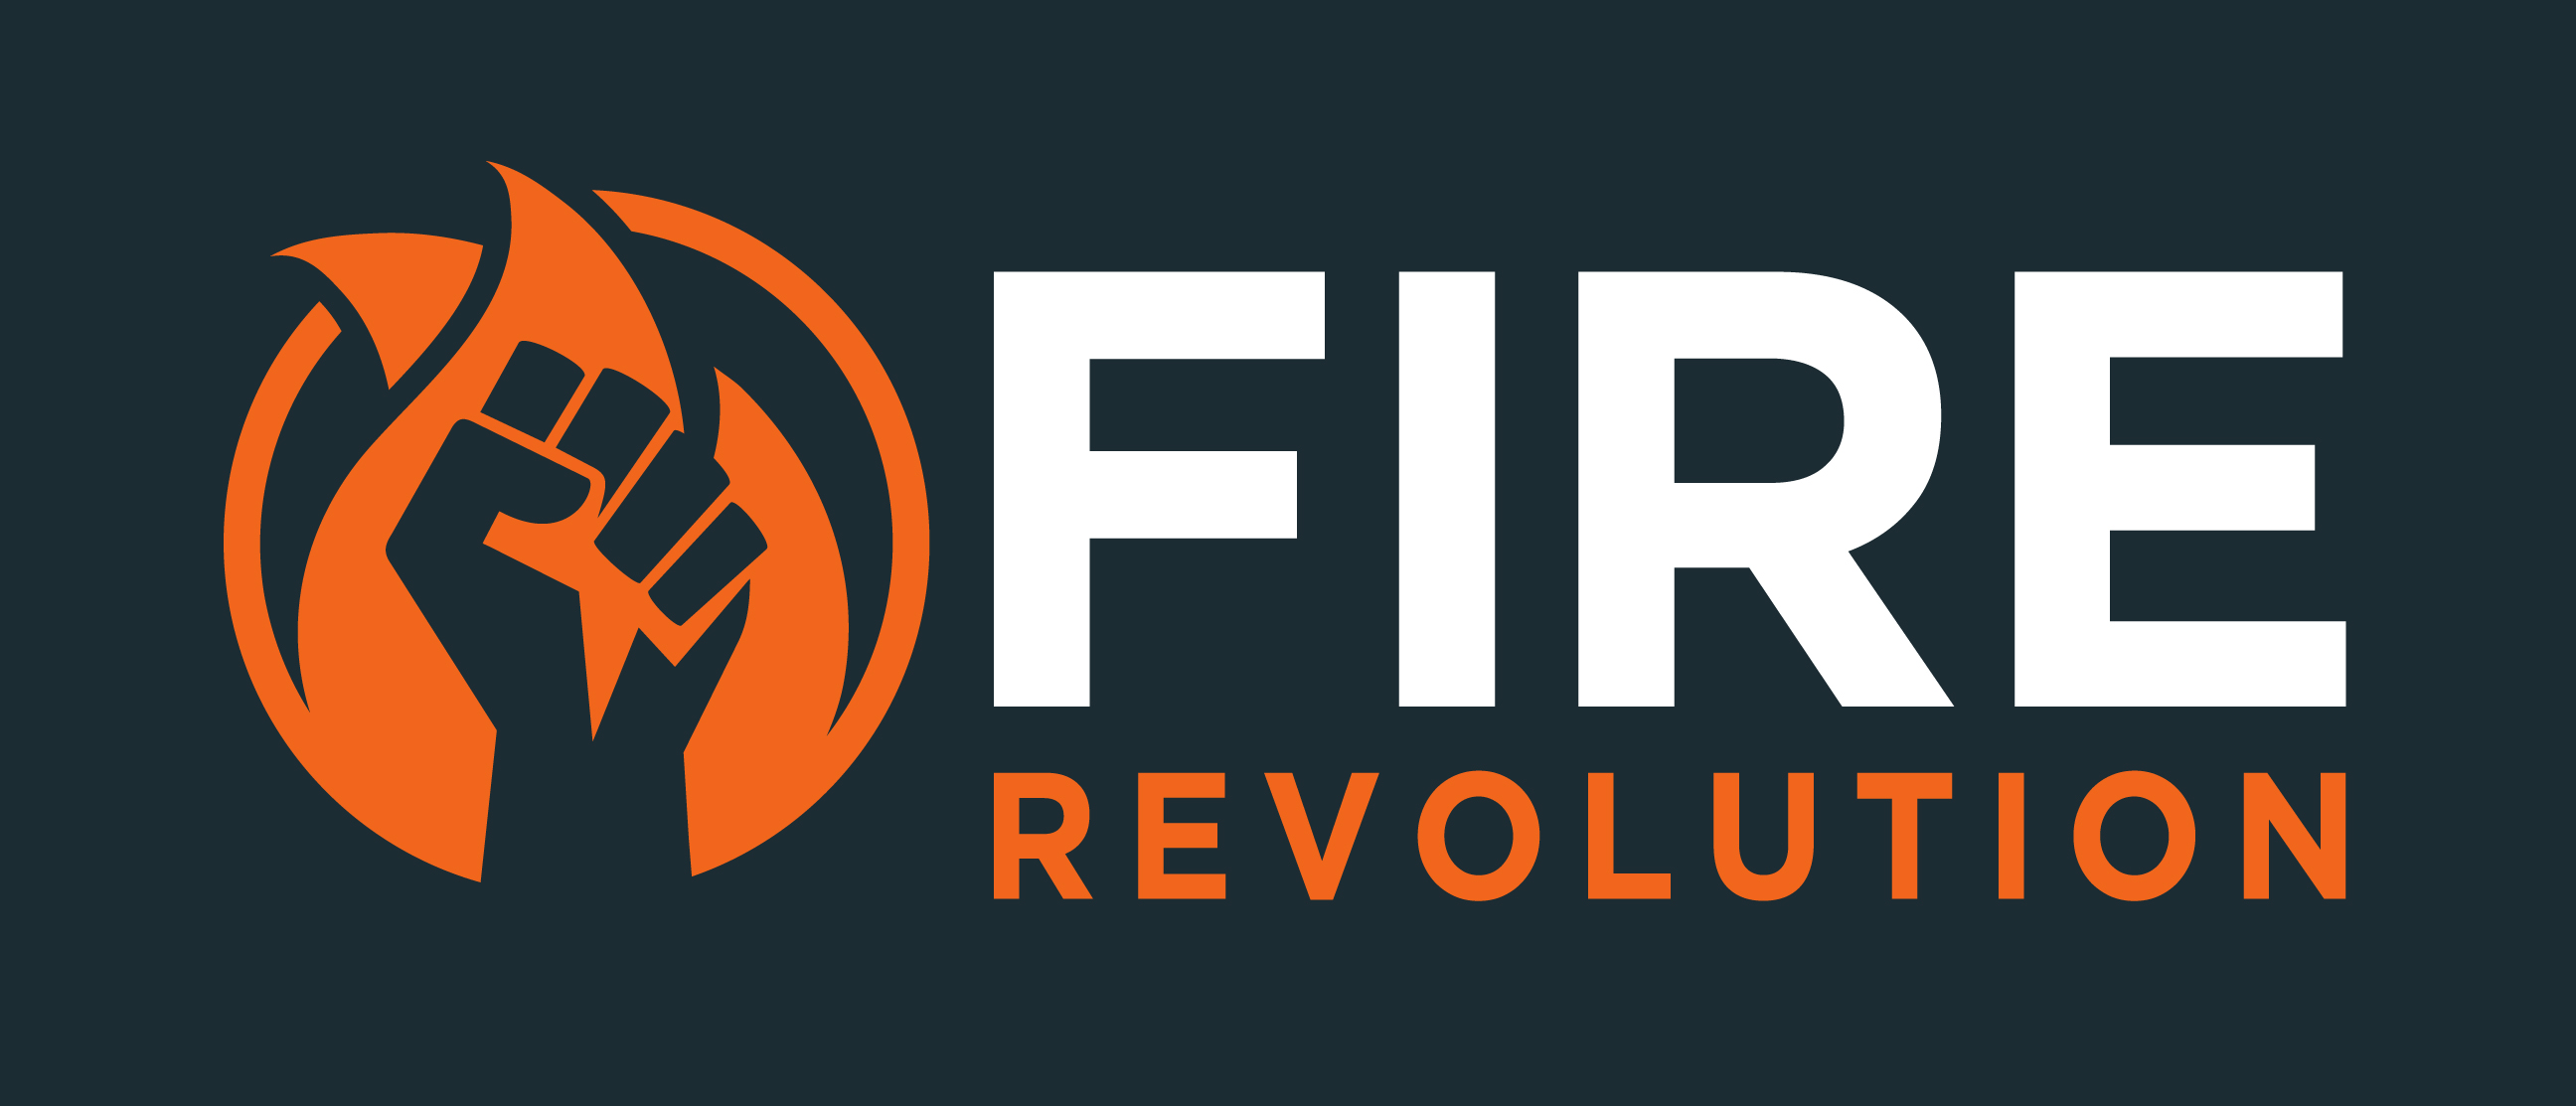 FIRE Revolution income strategy logo